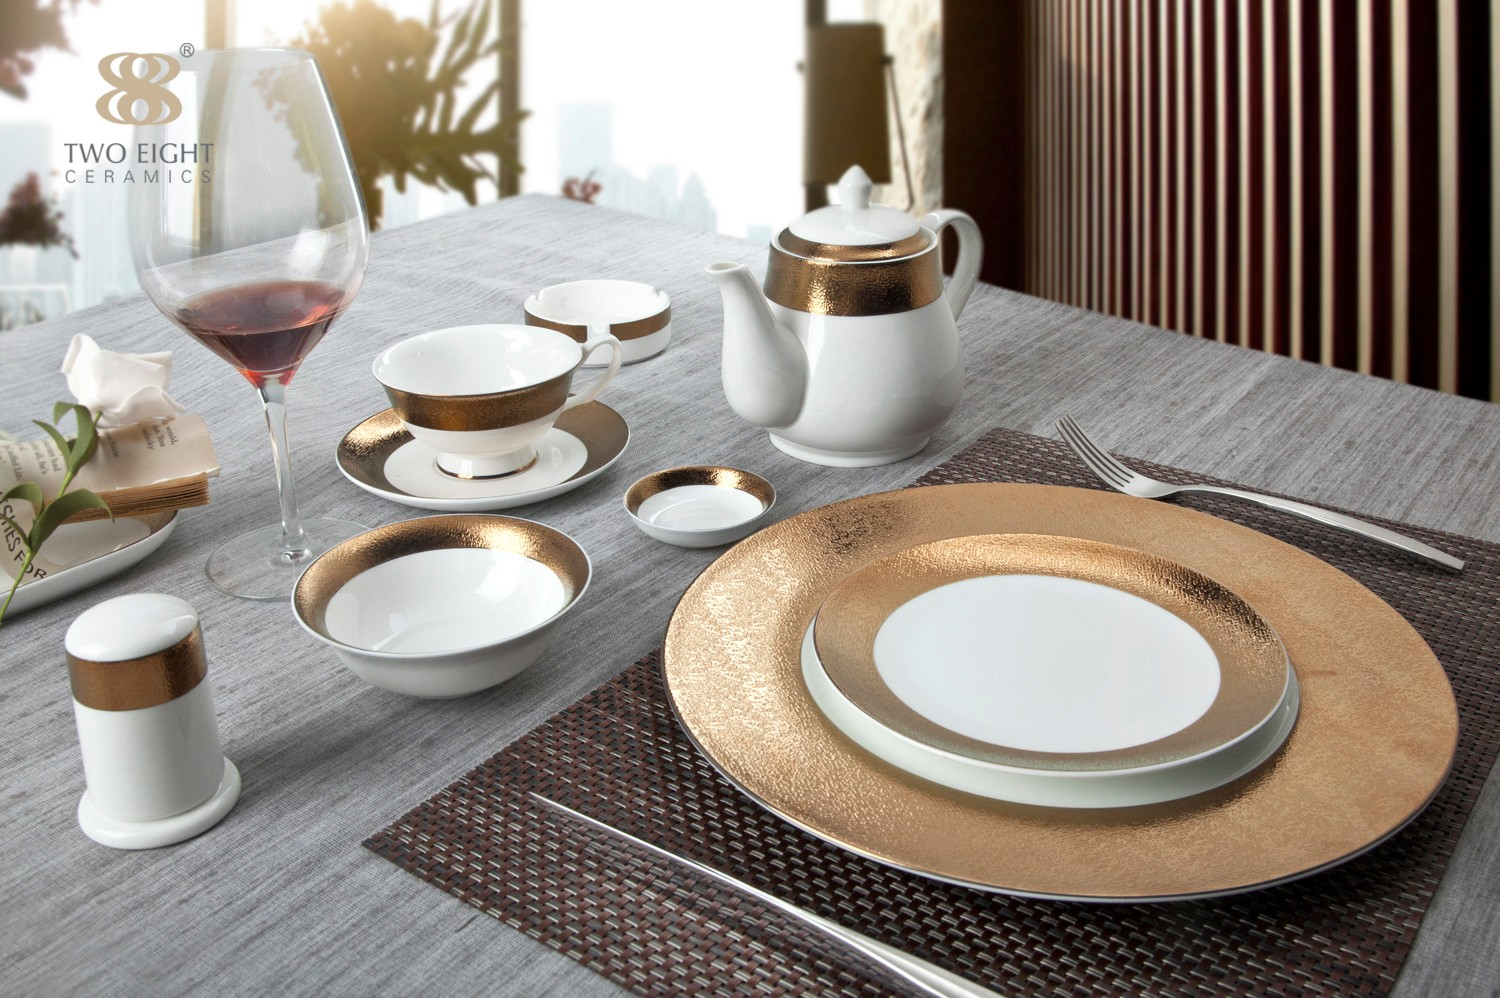 Two Eight-Guide About The Formal Restaurant Table Setting-1